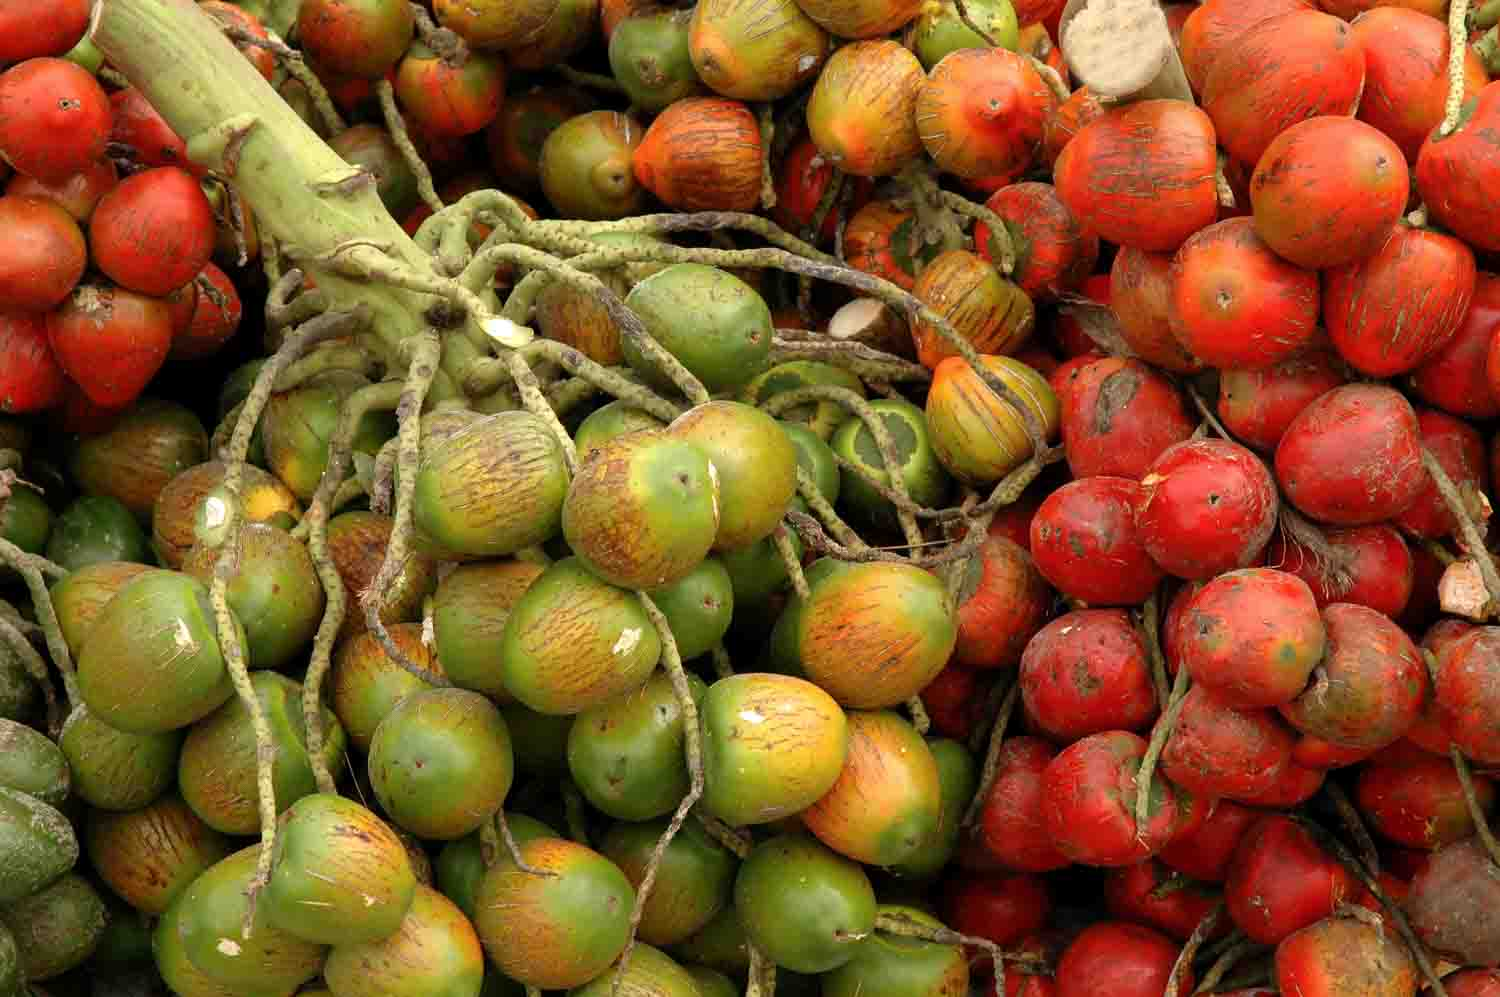 Pejibaye is palm beach fruit that can be found in Costa Rica.